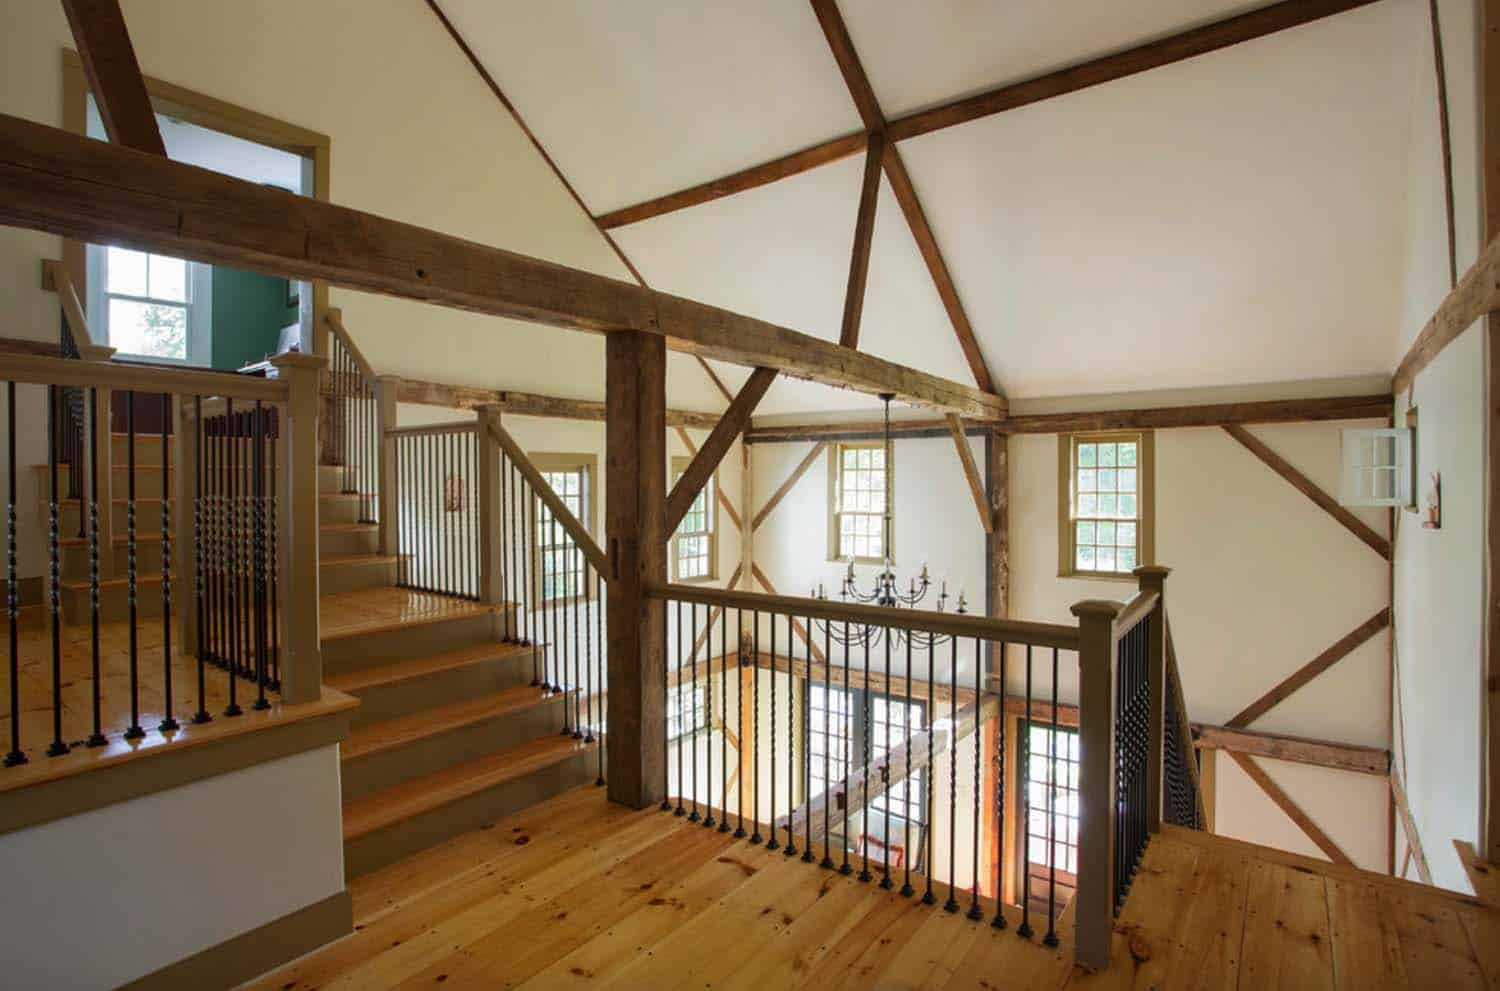 Historically Preserved Old Barn-Cummings Architects-07-1 Kindesign